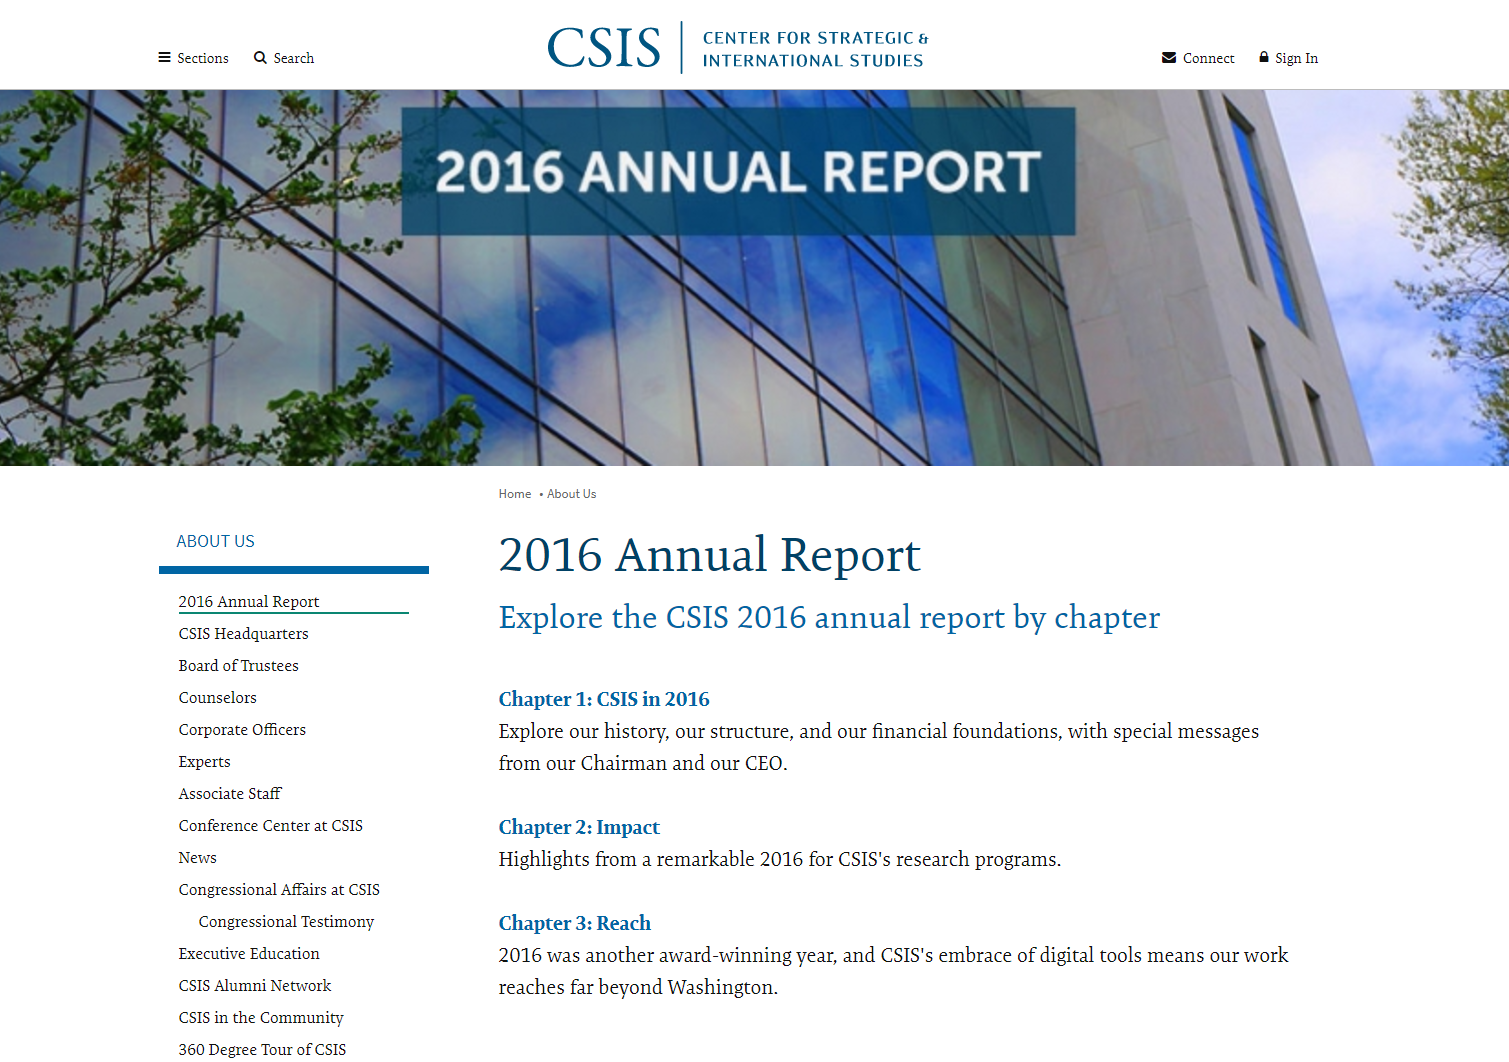 A screenshot of the Center for Strategic and International Studies nonprofit annual report from 2016.